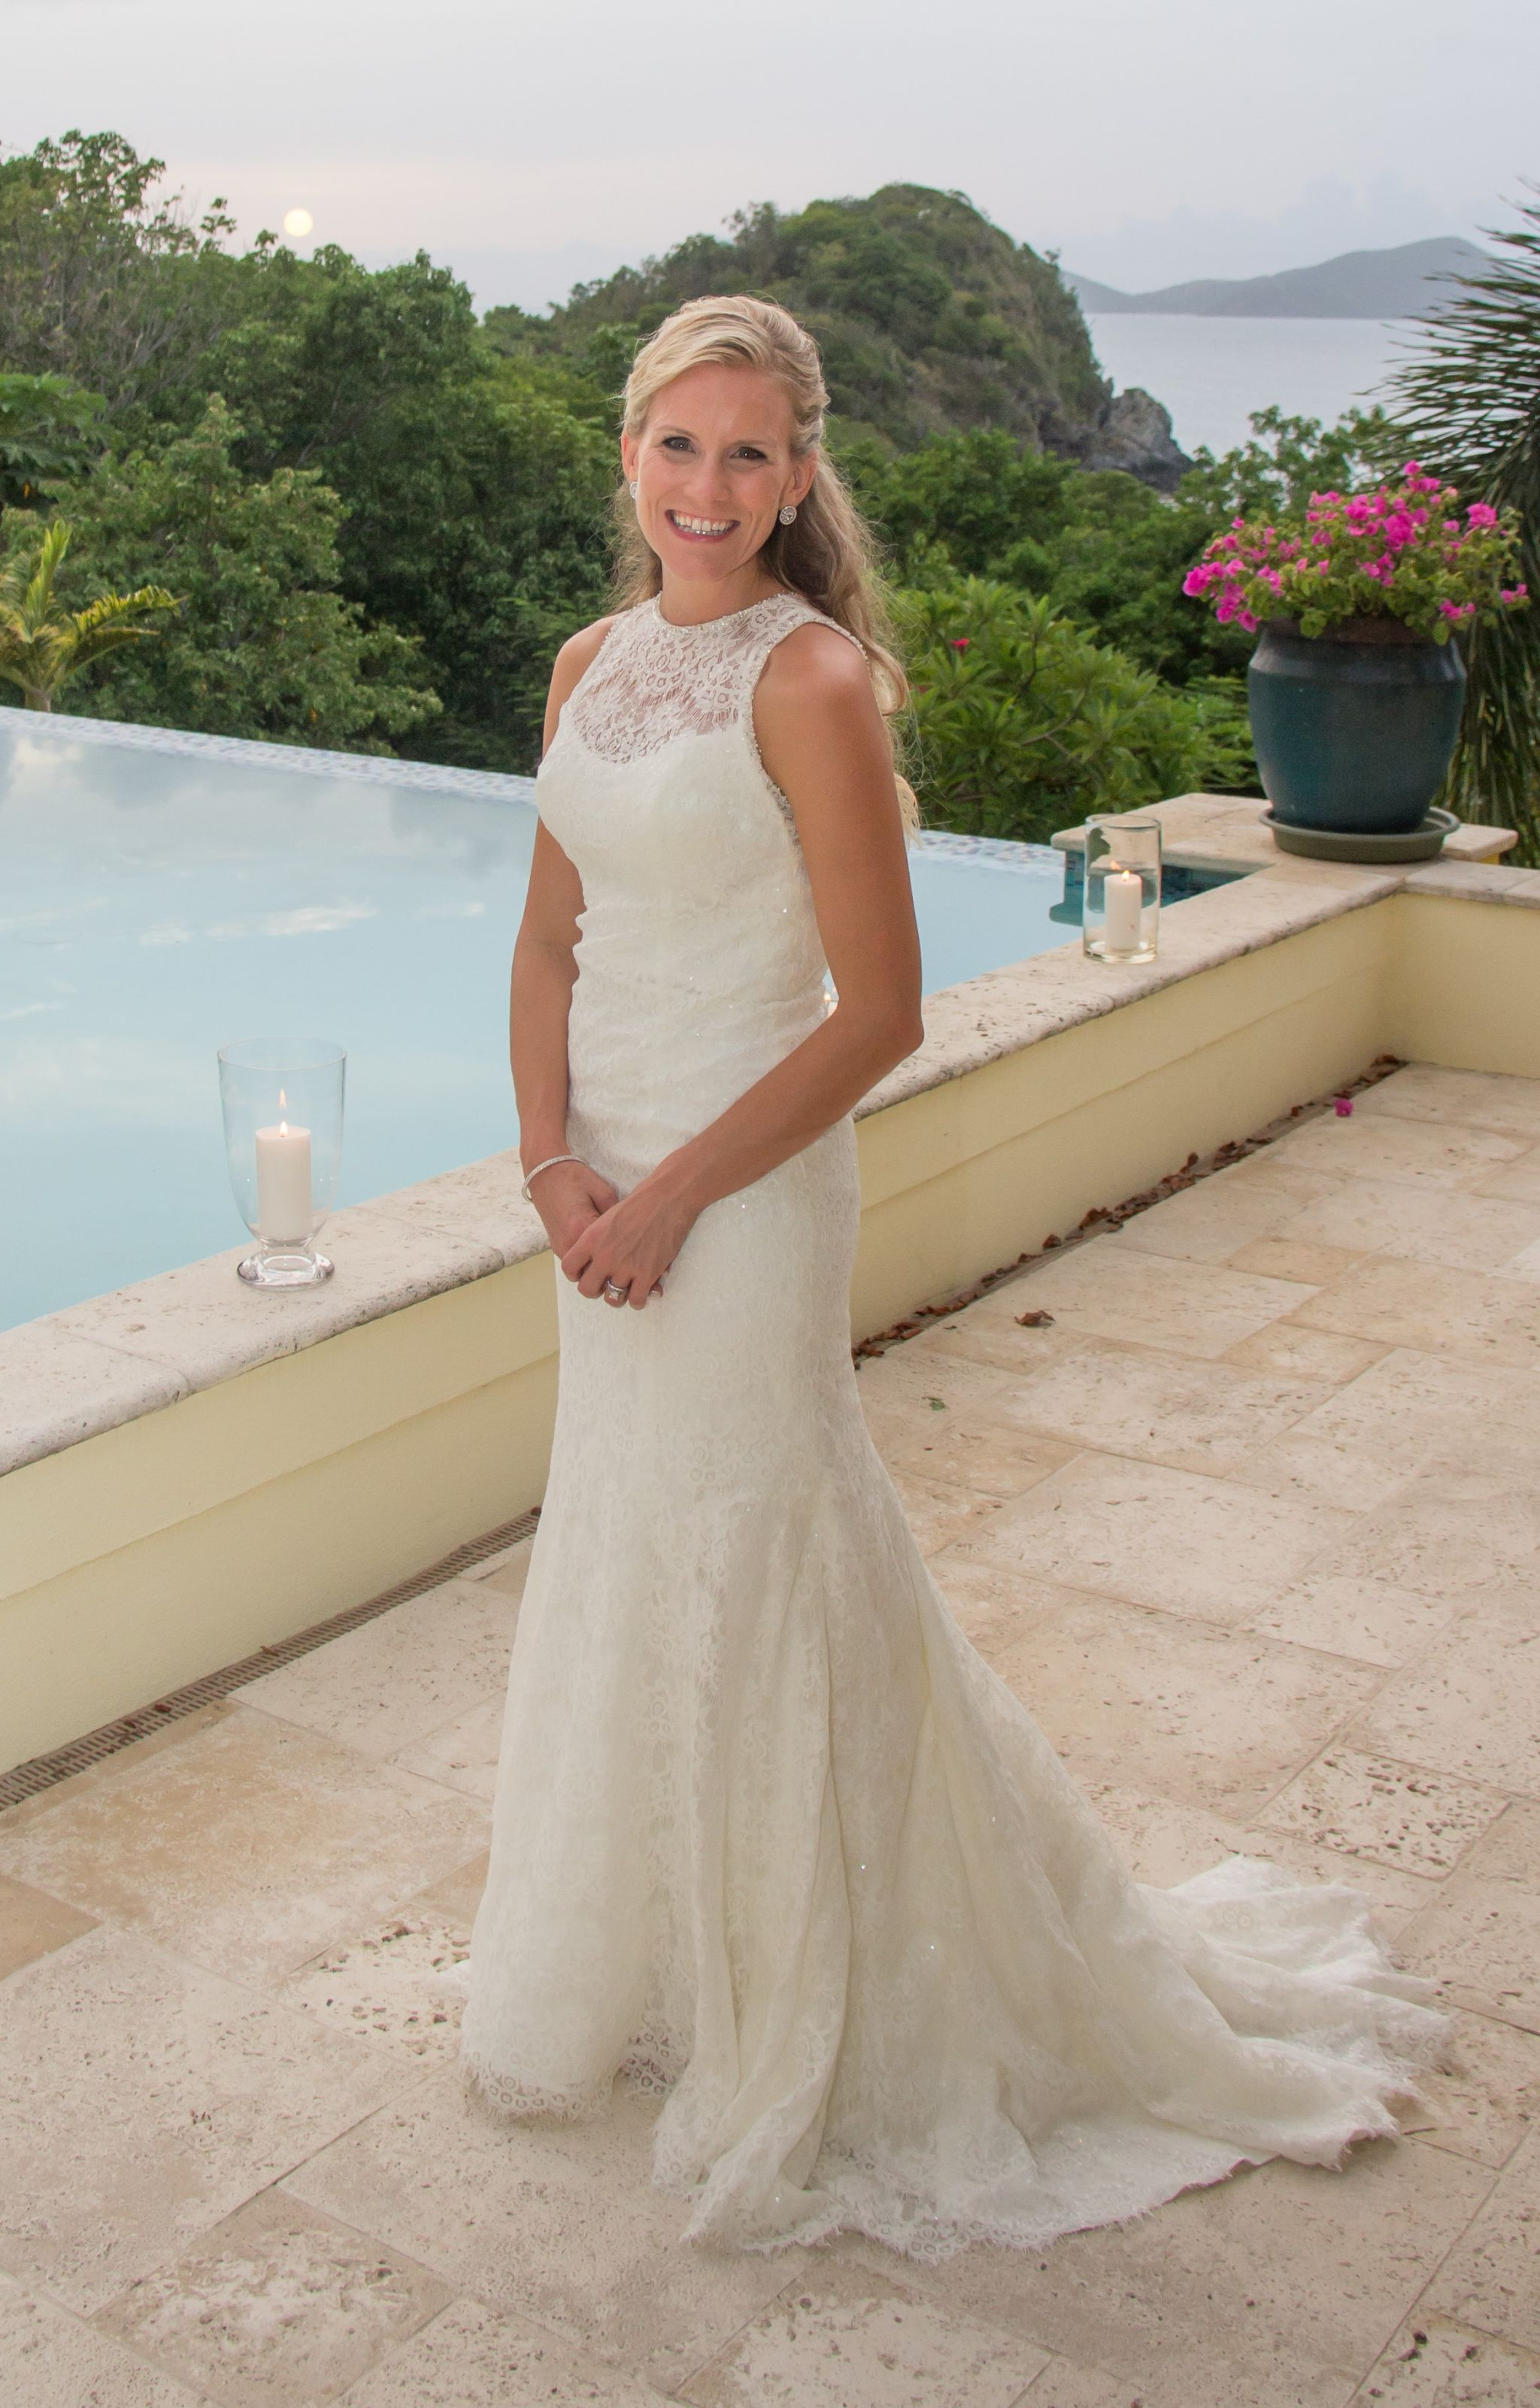 Bhldn devin 600 size 0 used wedding dresses wedding dress search used wedding dresses preowned wedding gowns for sale ombrellifo Gallery